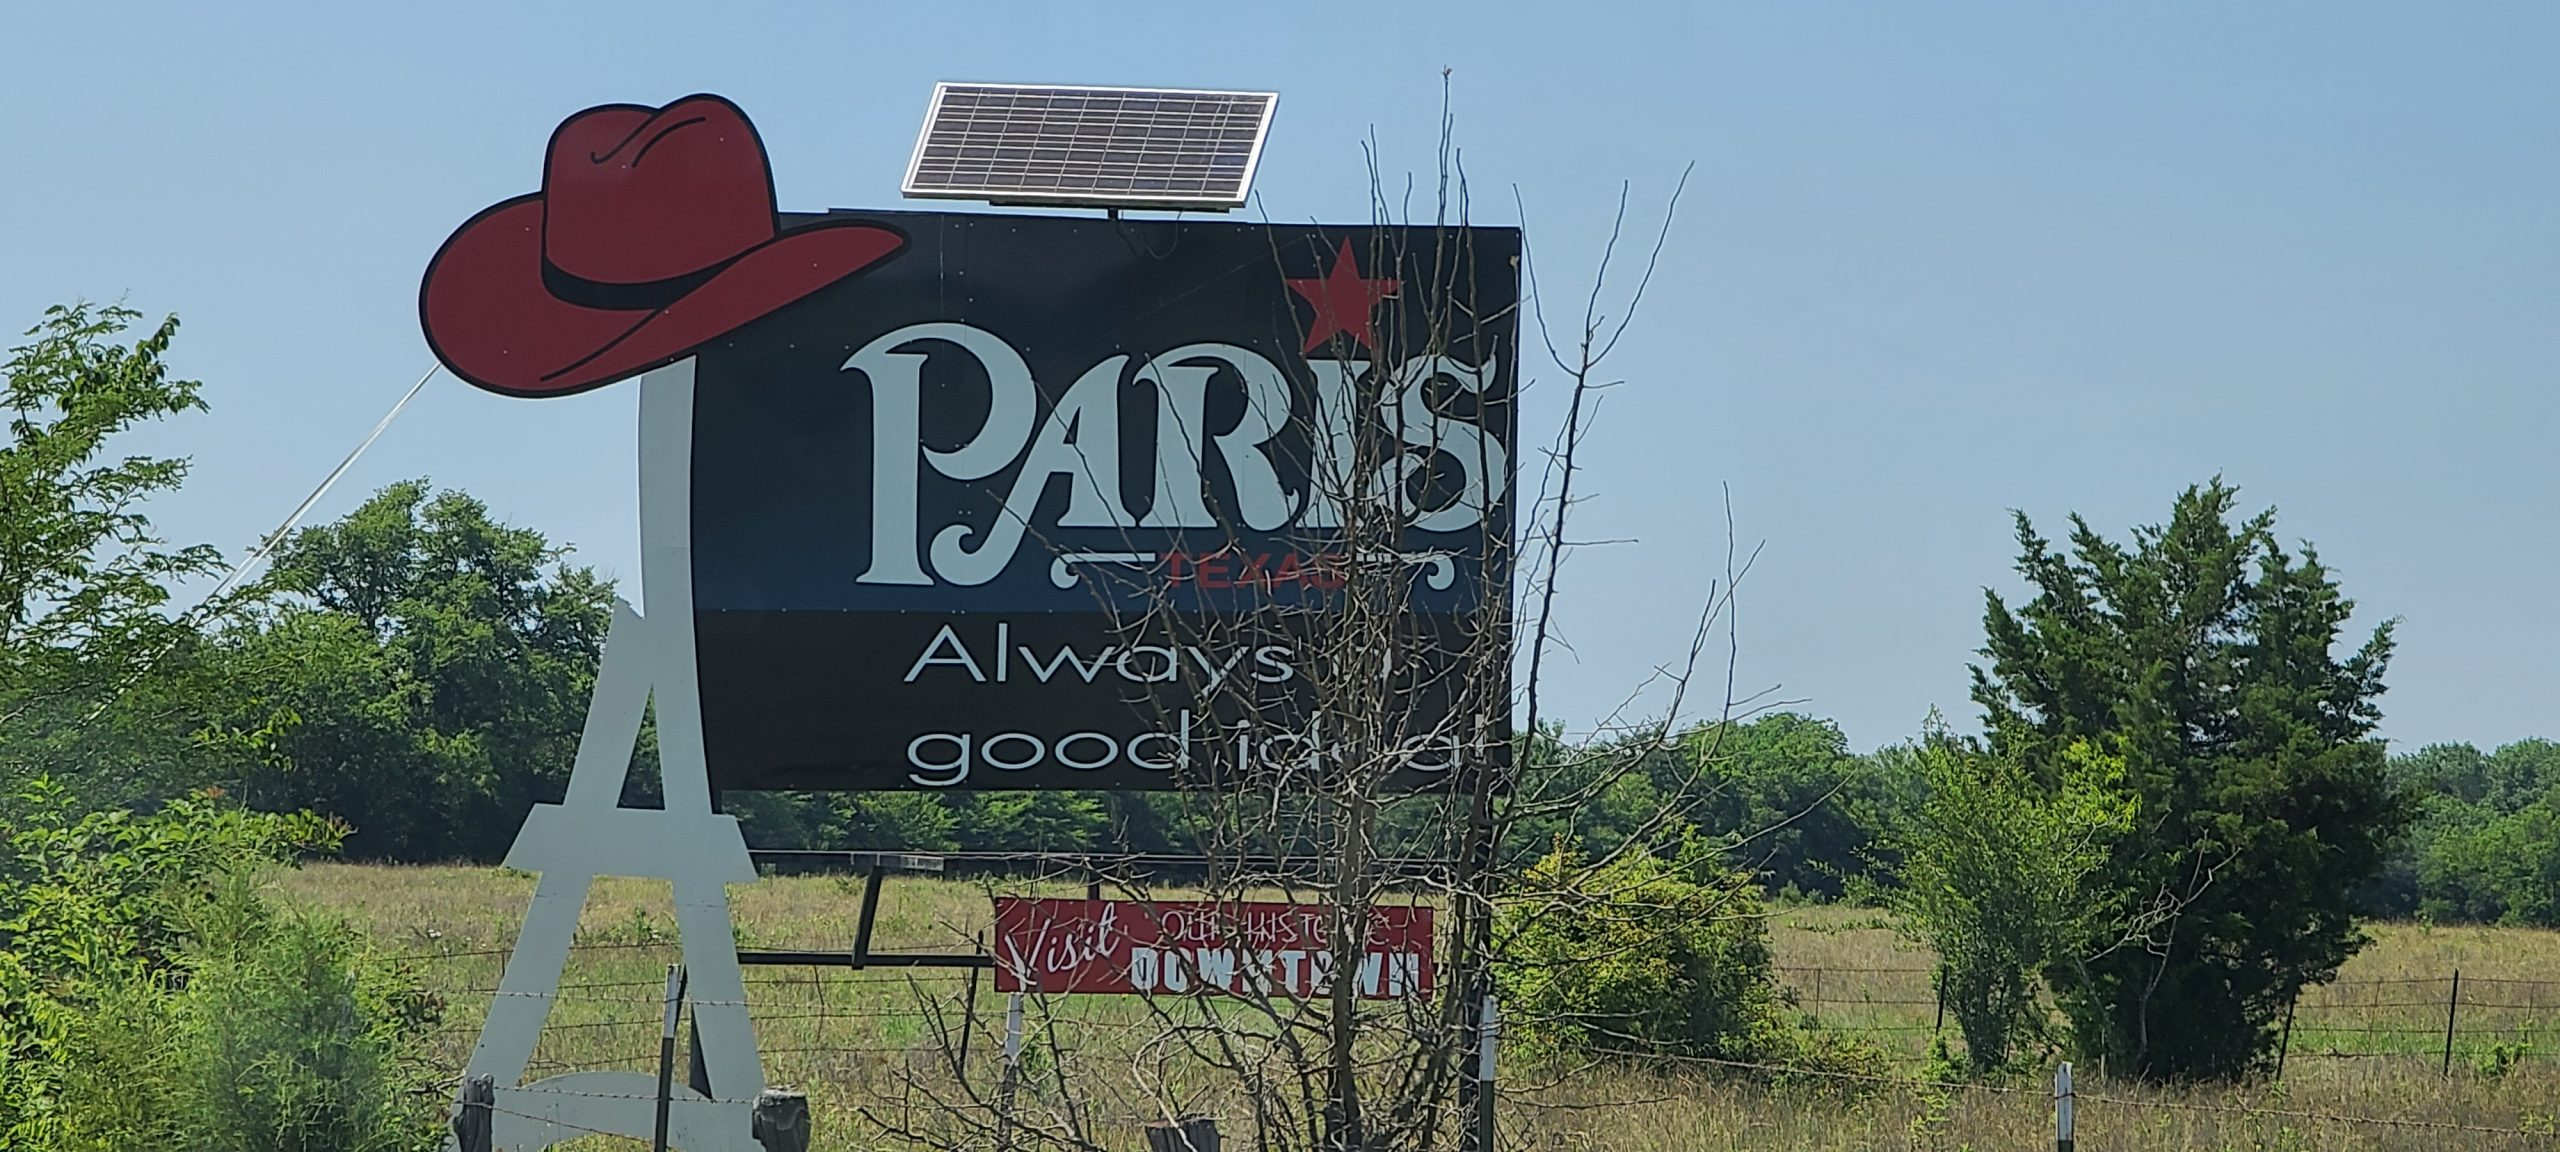 Paris, Texas signpost on entering city with the Eiffel Tower and a red cowboy on its top